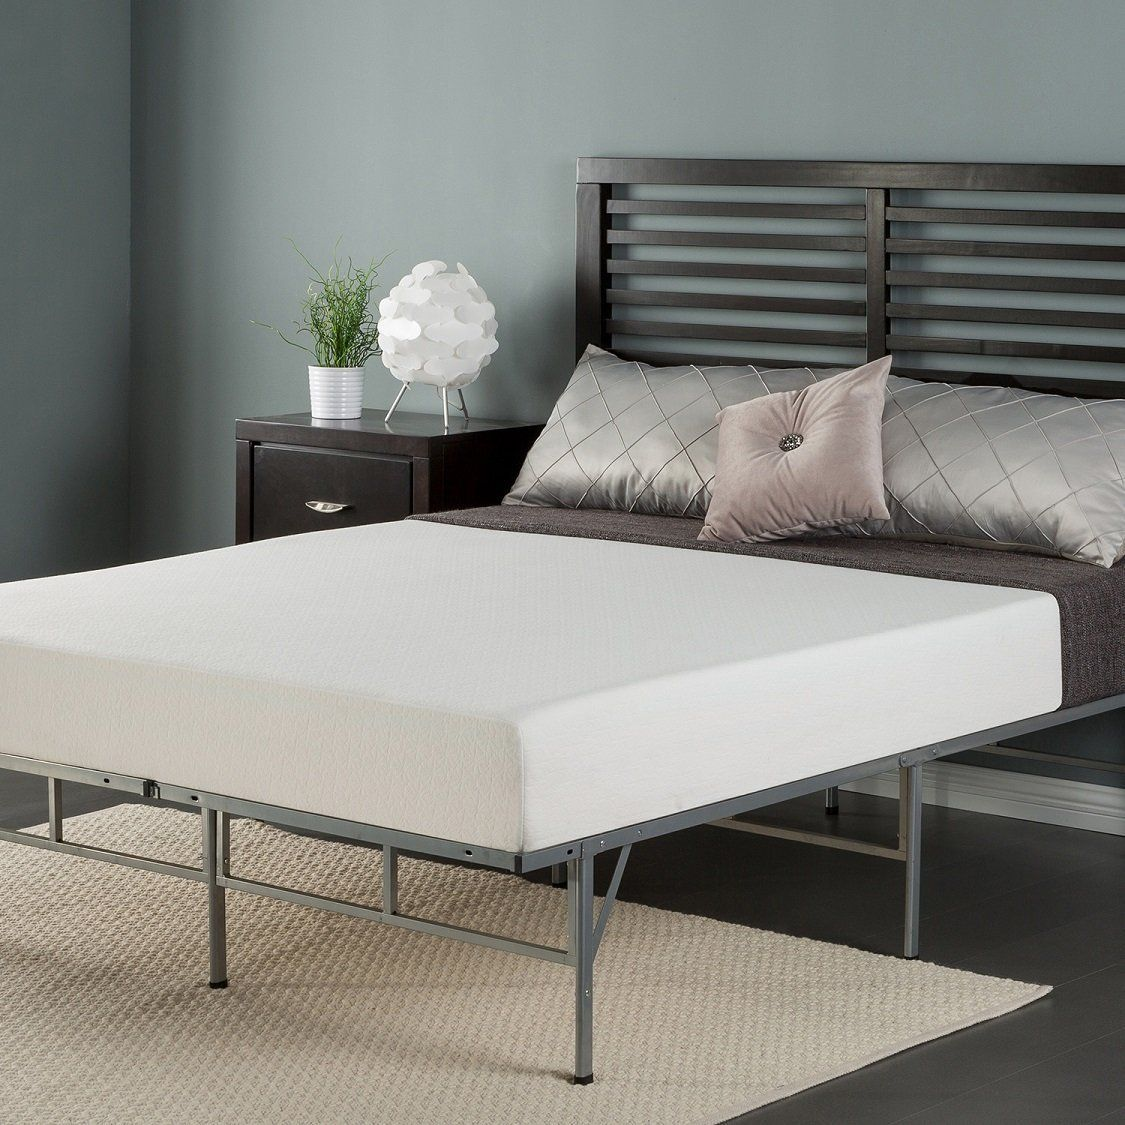 Zinus 8 Inch Memory Foam Mattress And Easy To Assemble